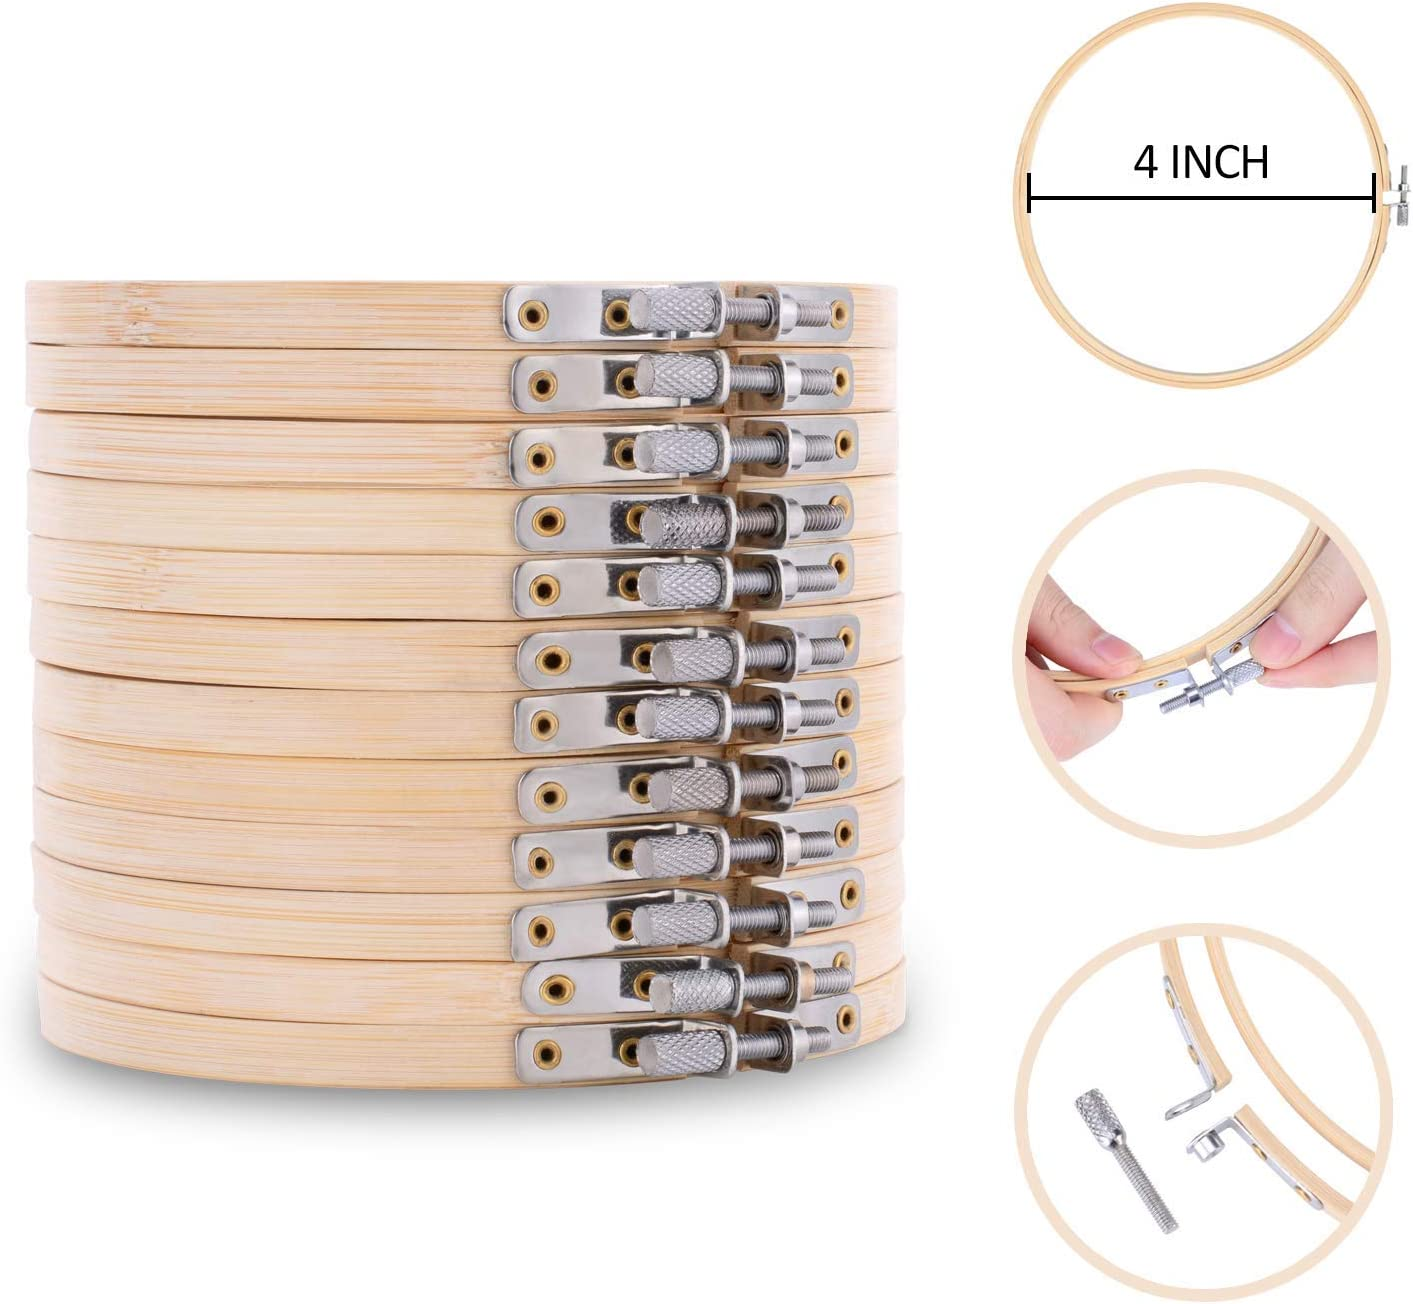 6 inch Bamboo Wooden Embroidery Hoop Stitch Ring Frame Sewing Craft DIY Tool